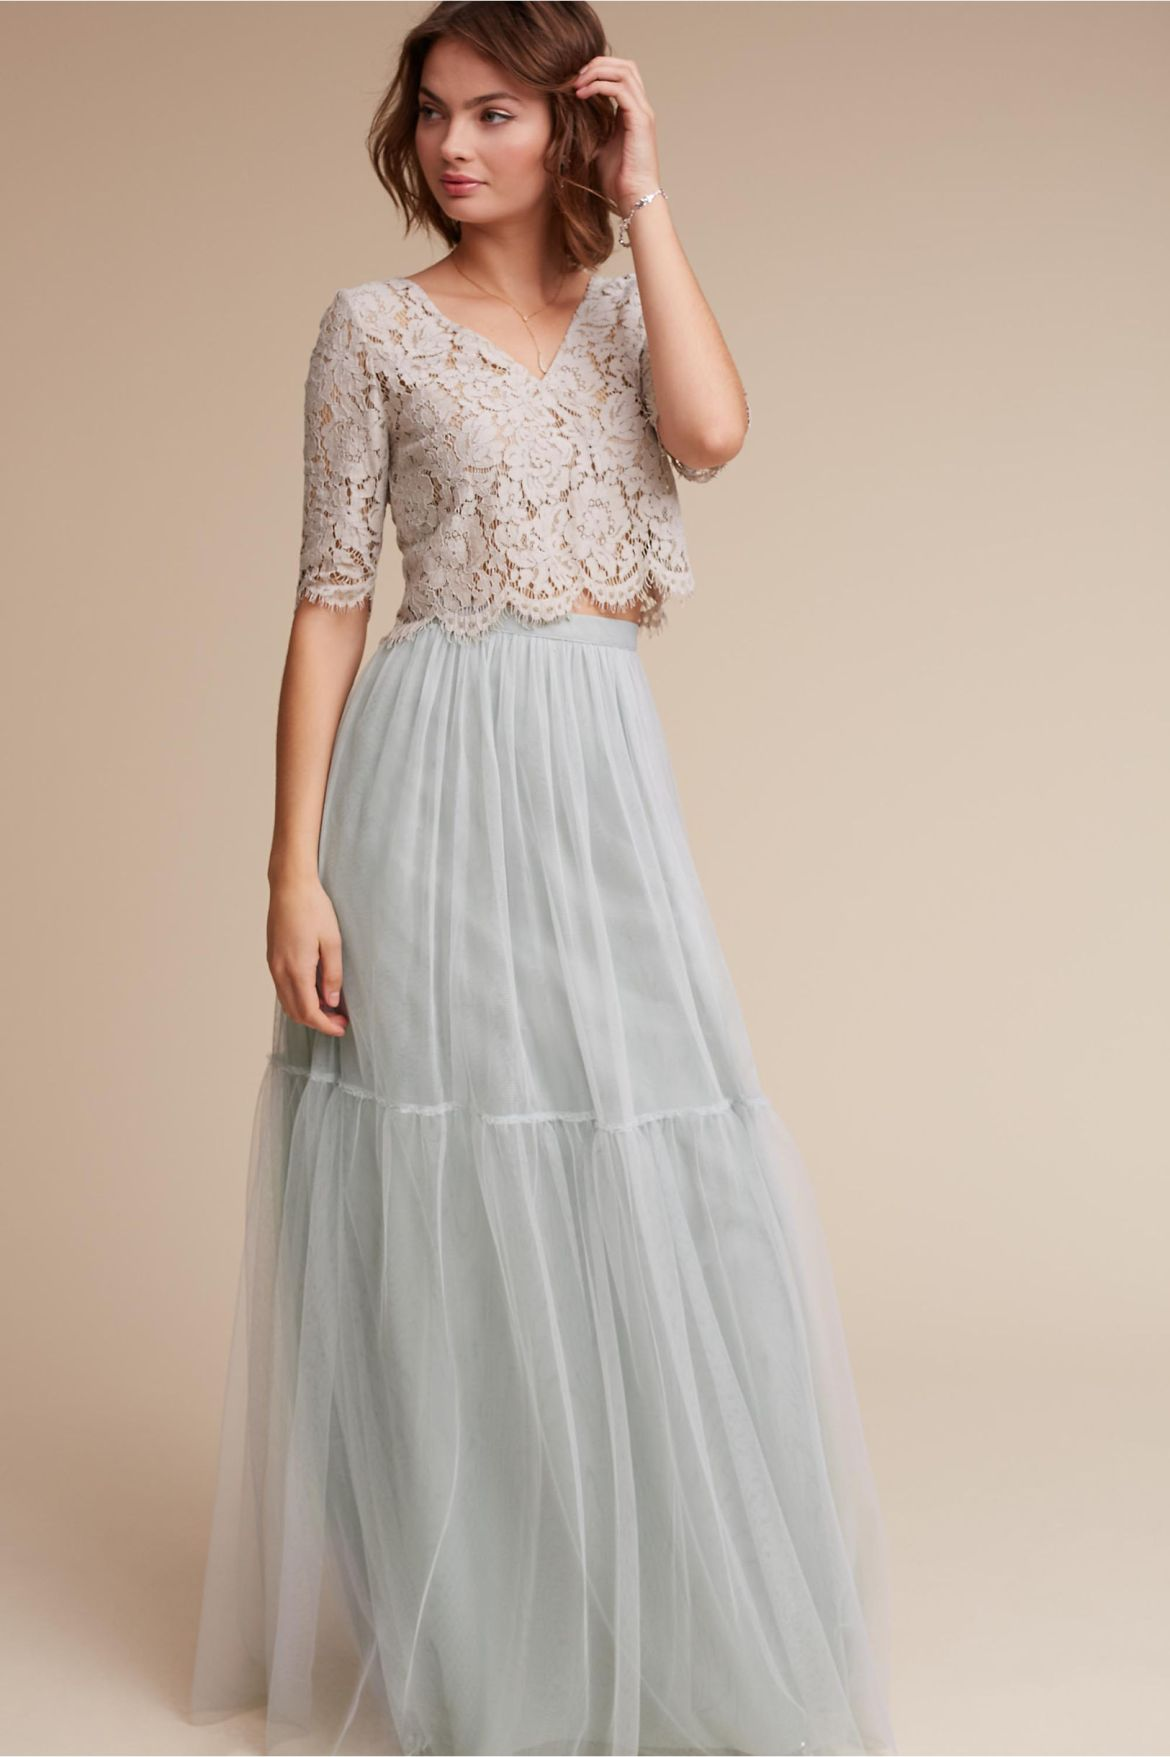 Bridesmaid Tulle Skirts 10 Tulle Skirts For Bridesmaids